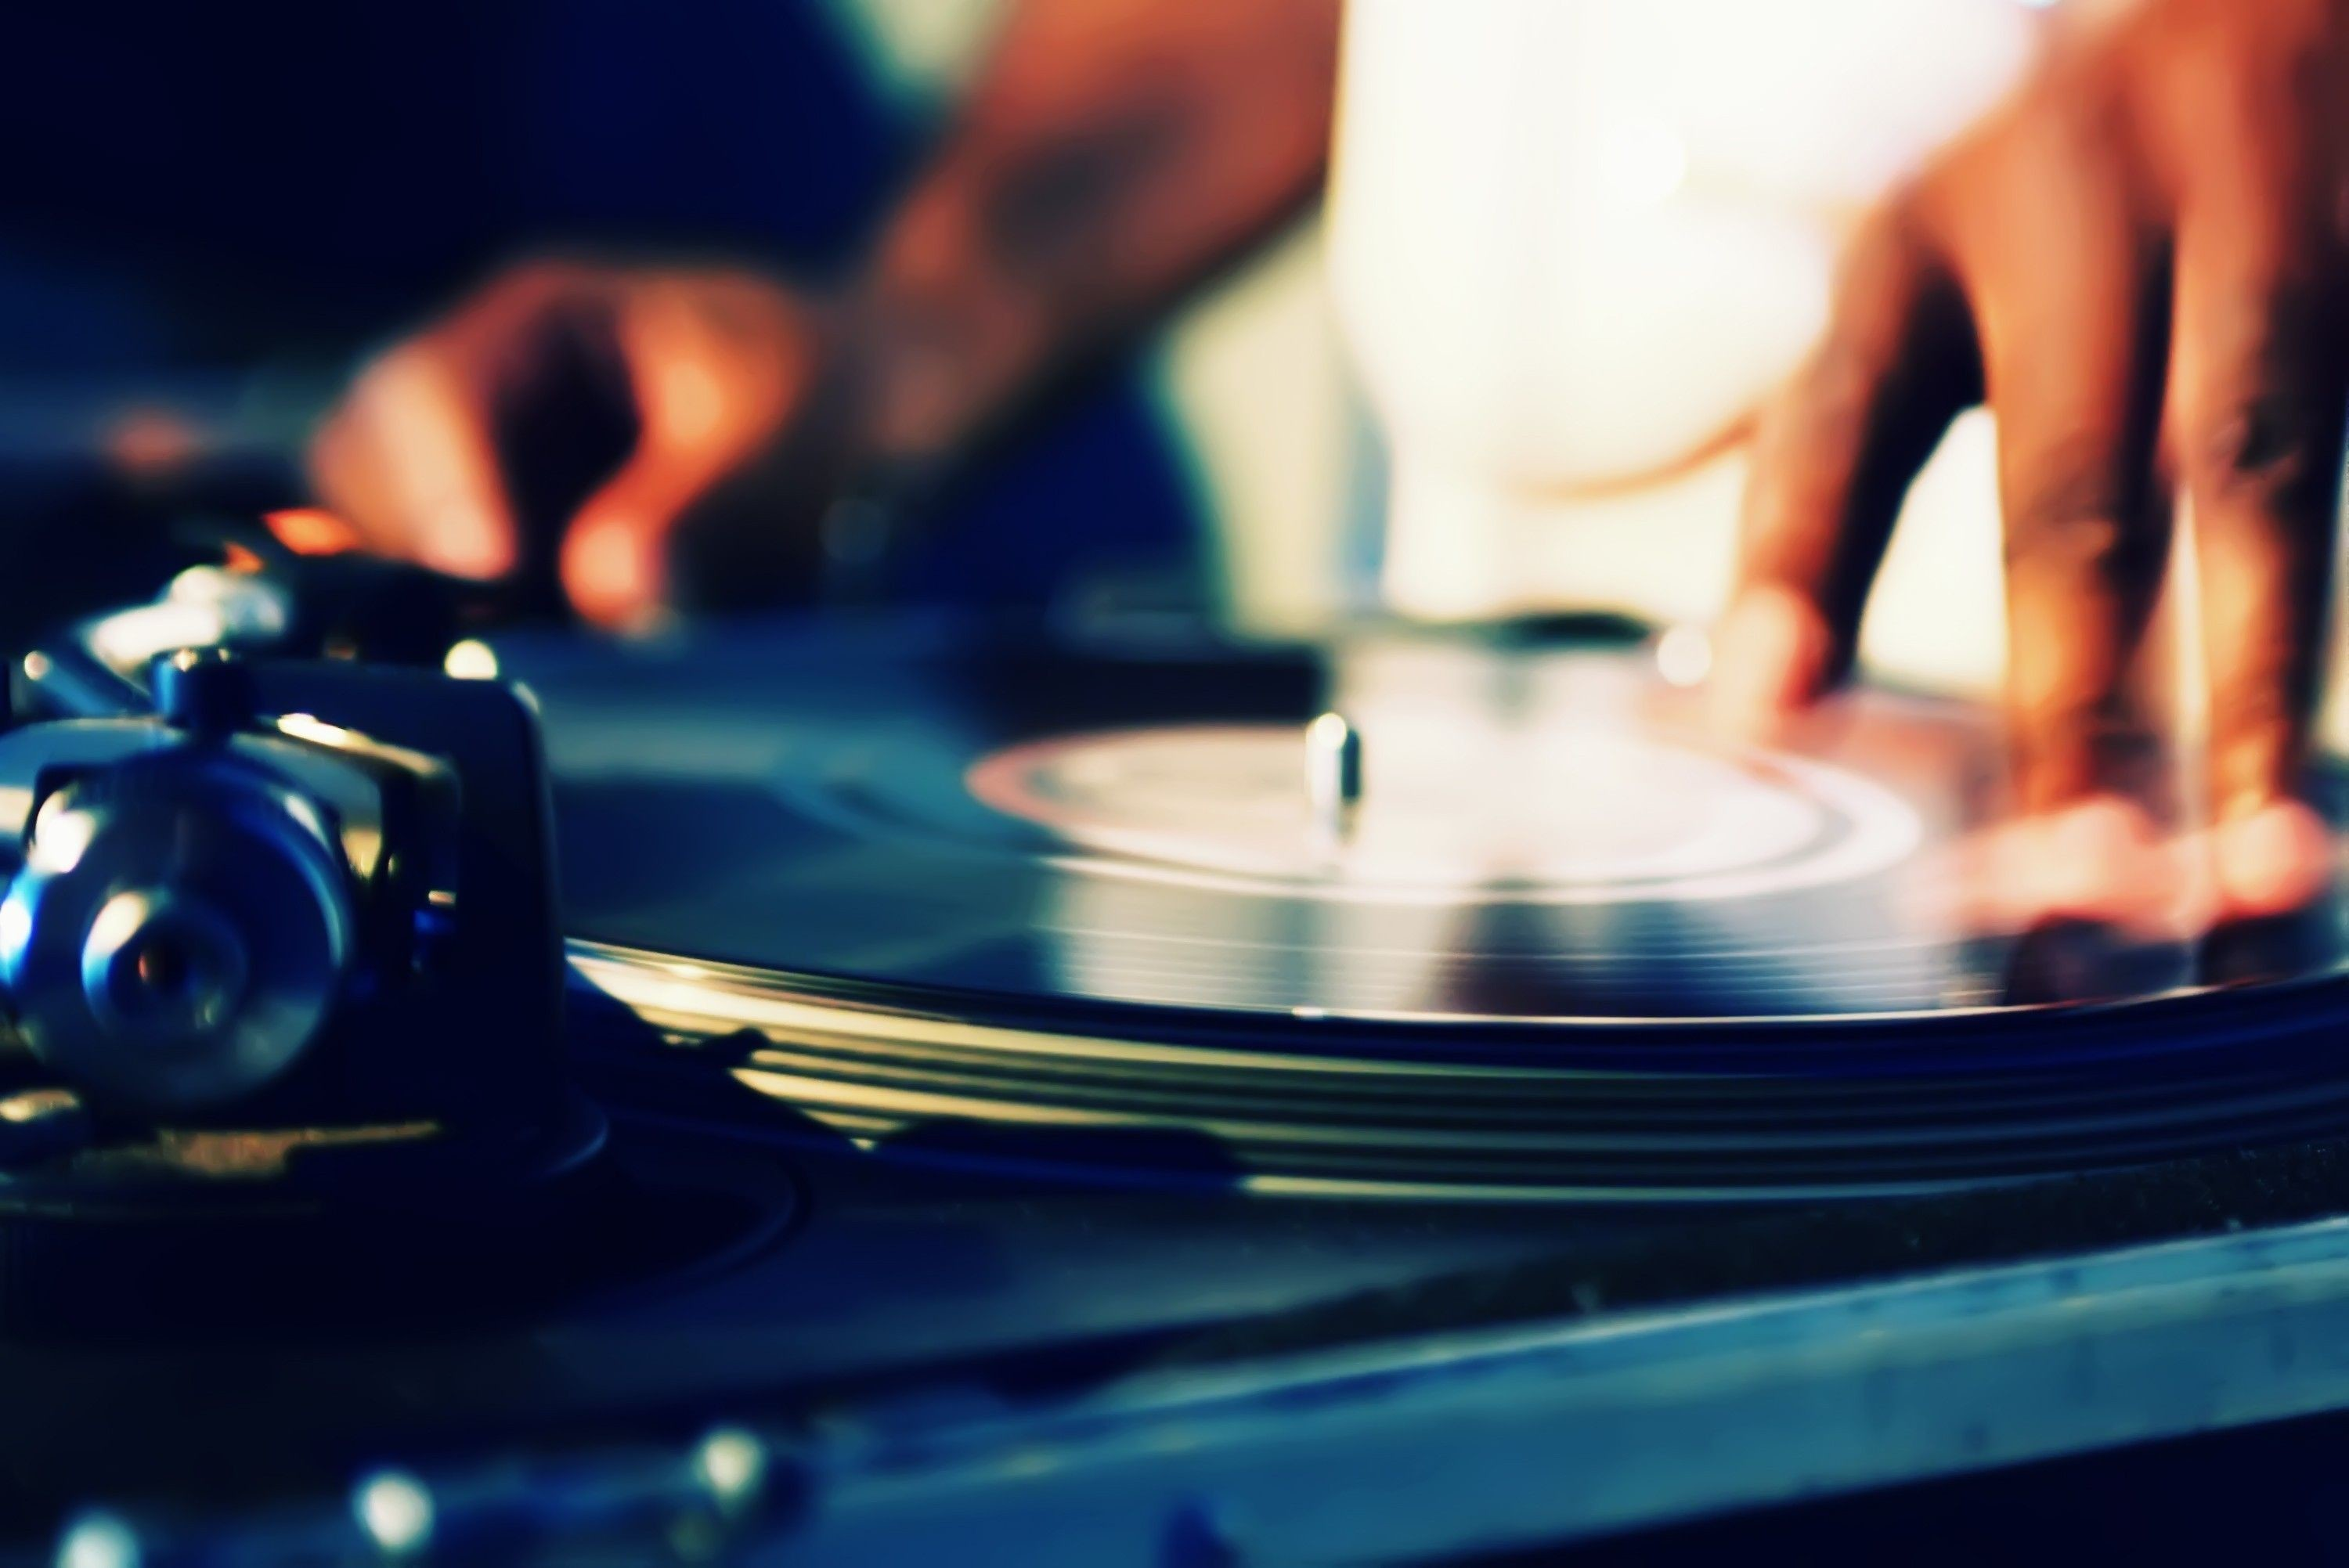 DJ Turntable HD Wallpaper For Mac 13817 – Amazing Wallpaperz